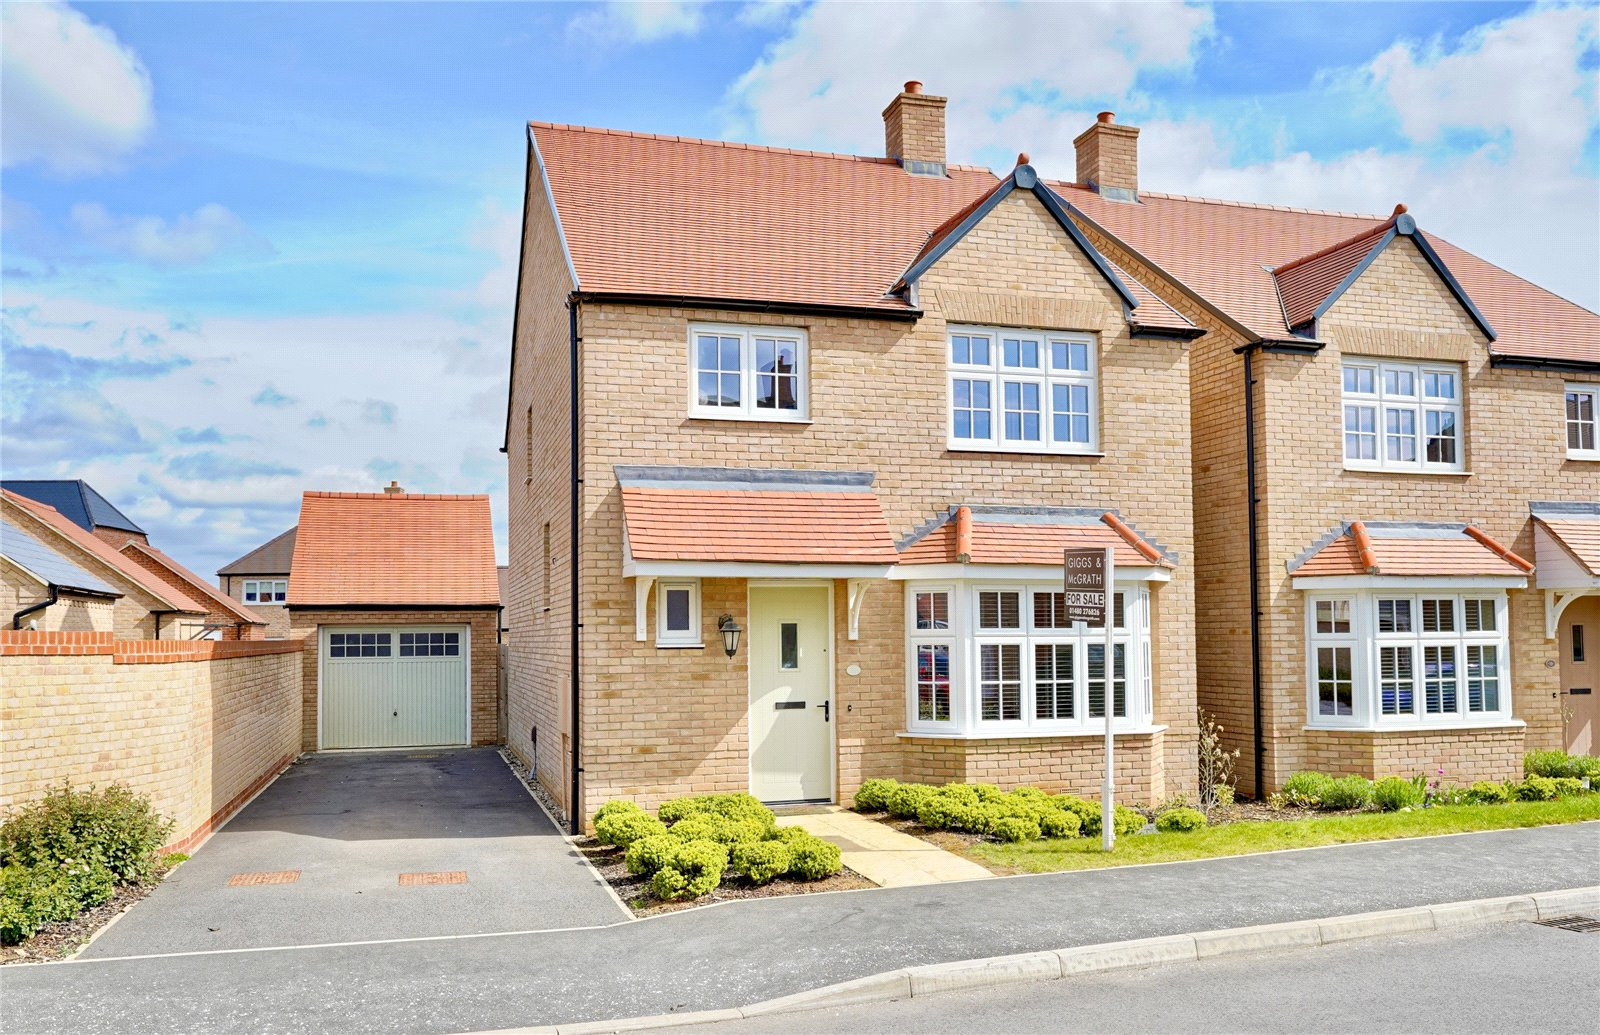 4 bed house for sale in Alconbury Weald, PE28 4BP, PE28